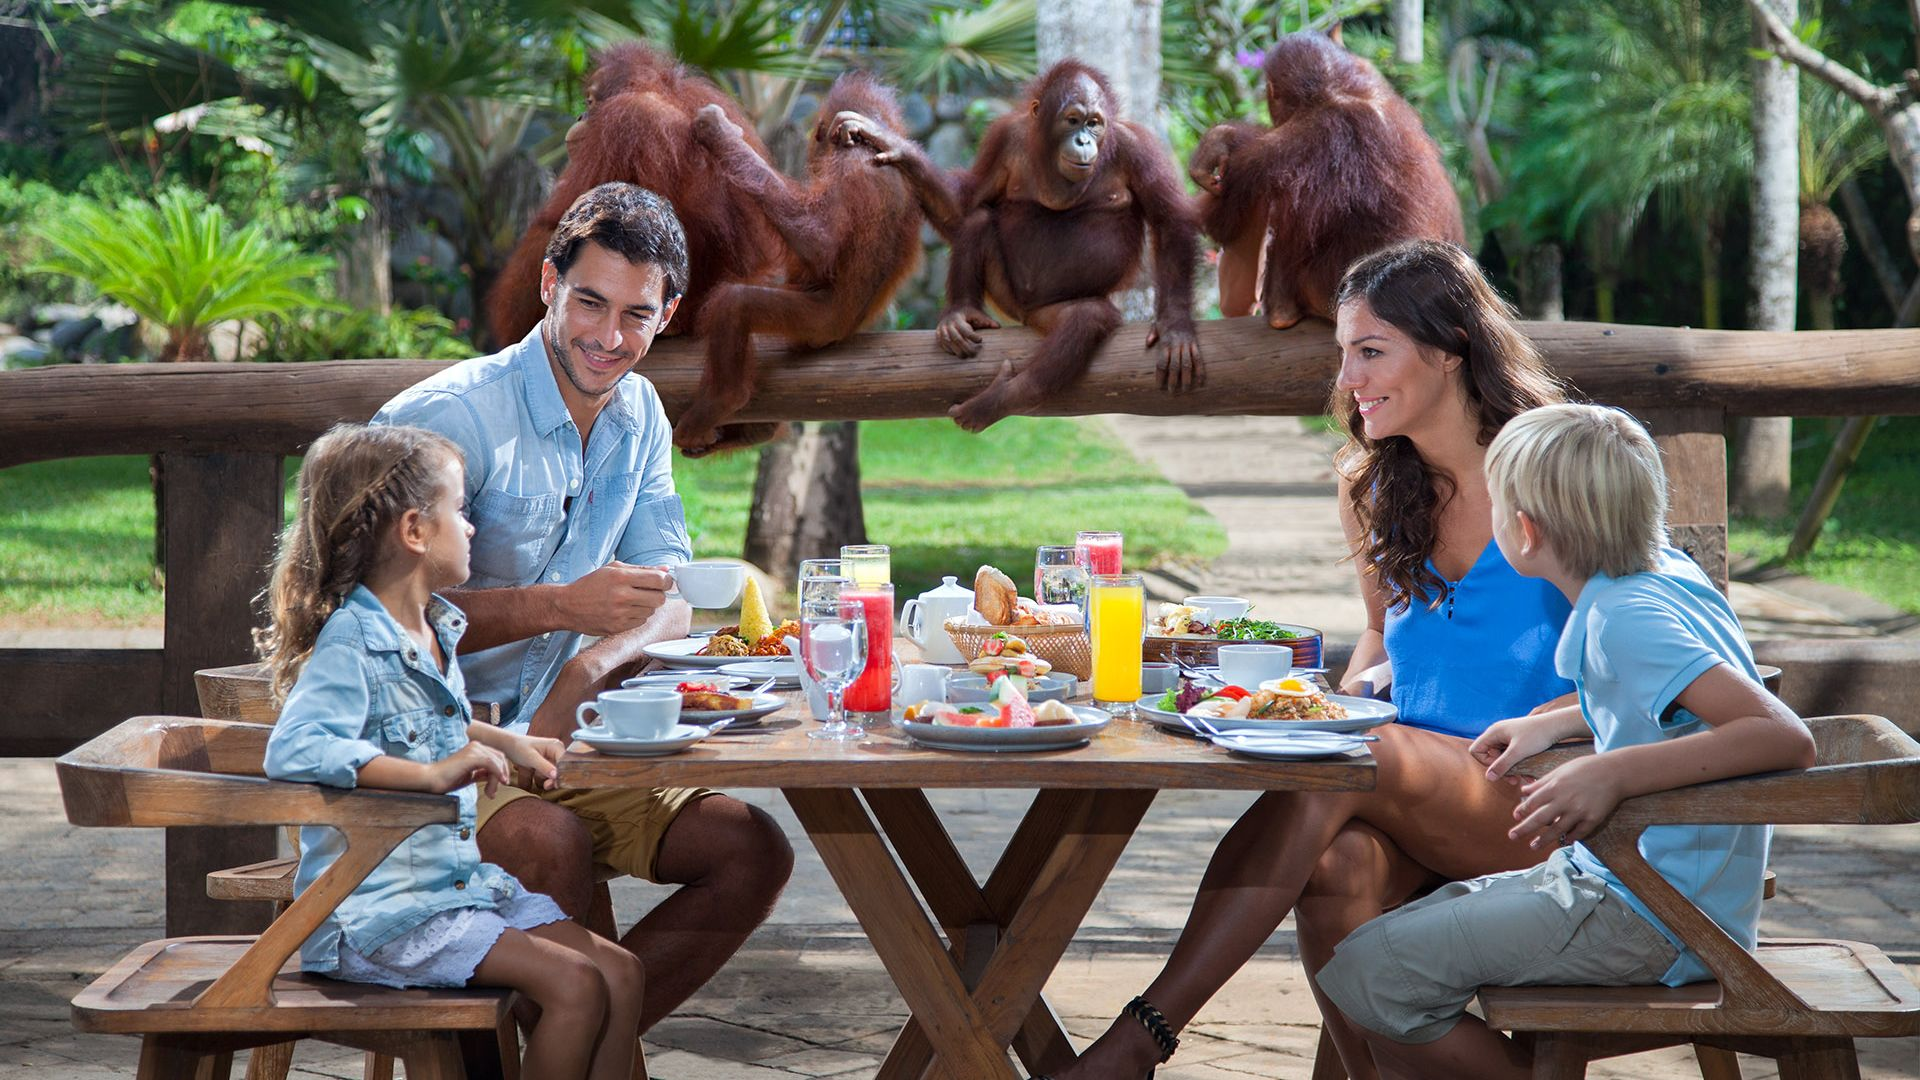 Breakfast with Orangutans at Bali Zoo